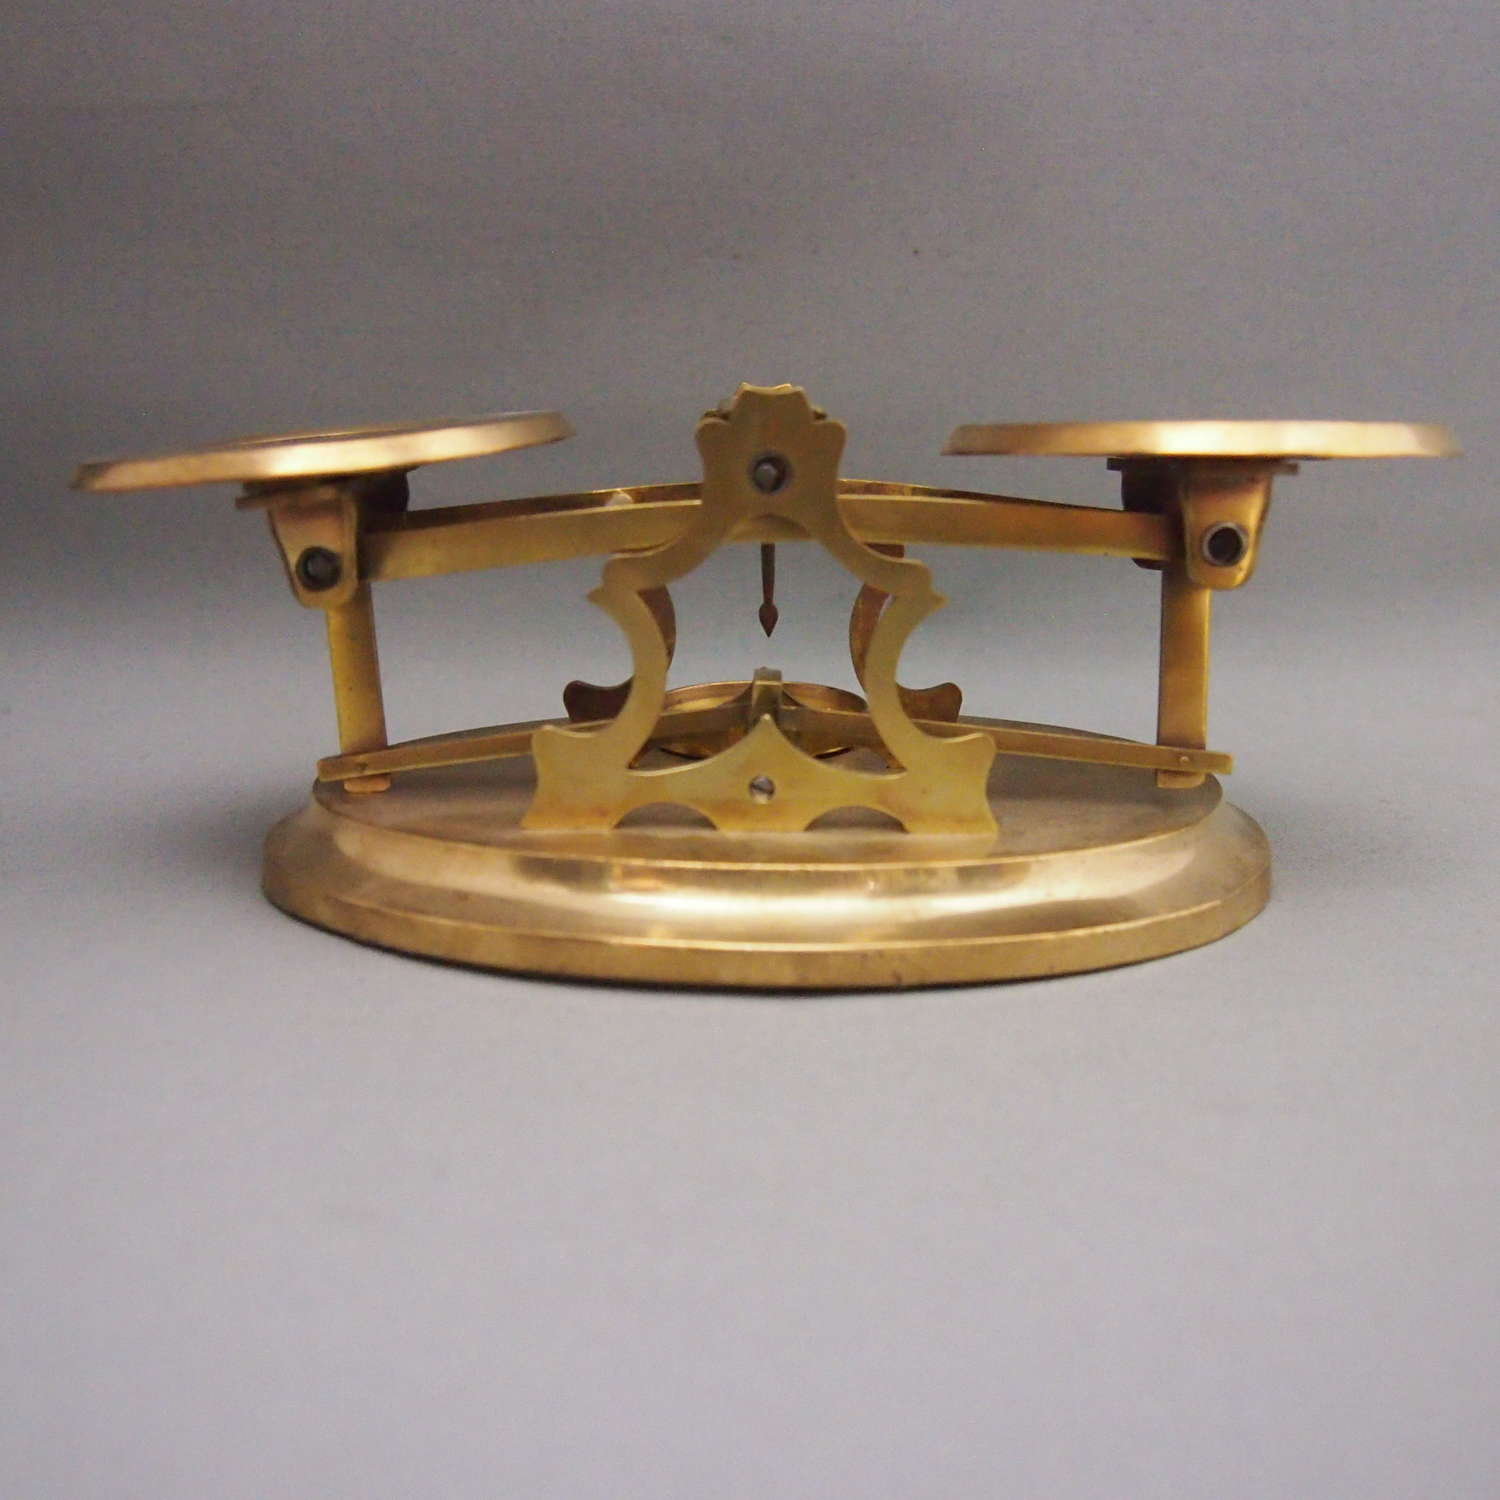 Brass Antique Postal Scales with Set ofWeights, W8659